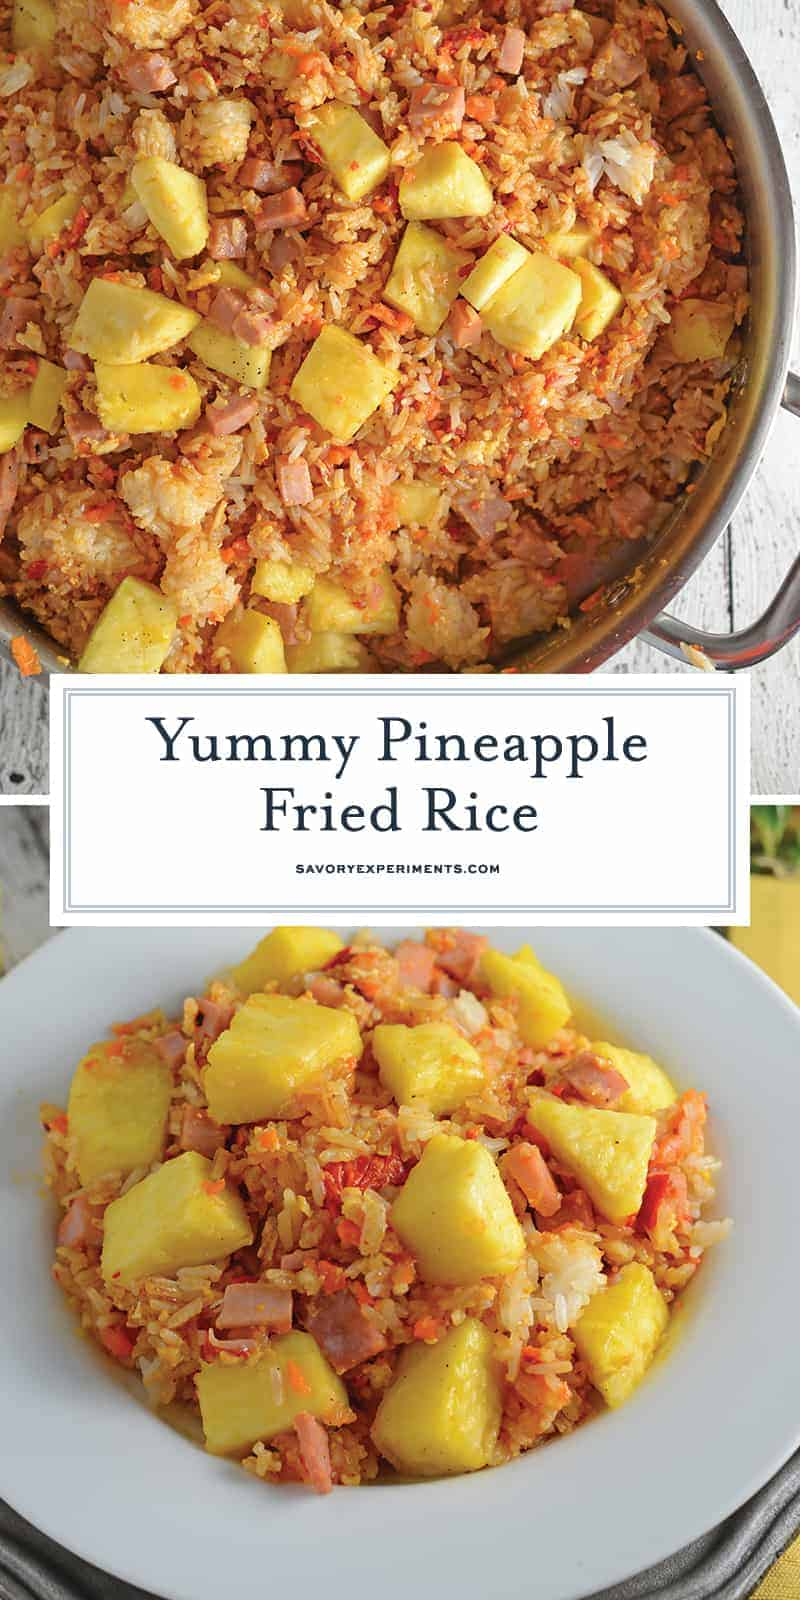 Pineapple Fried Rice is a quick, easy weeknight meal that's much cheaper, tastier and healthier than take-out! Make it a vegetarian meal or add ham. #pineapplefriedrice #easyfriedricerecipe www.savoryexperiments.com